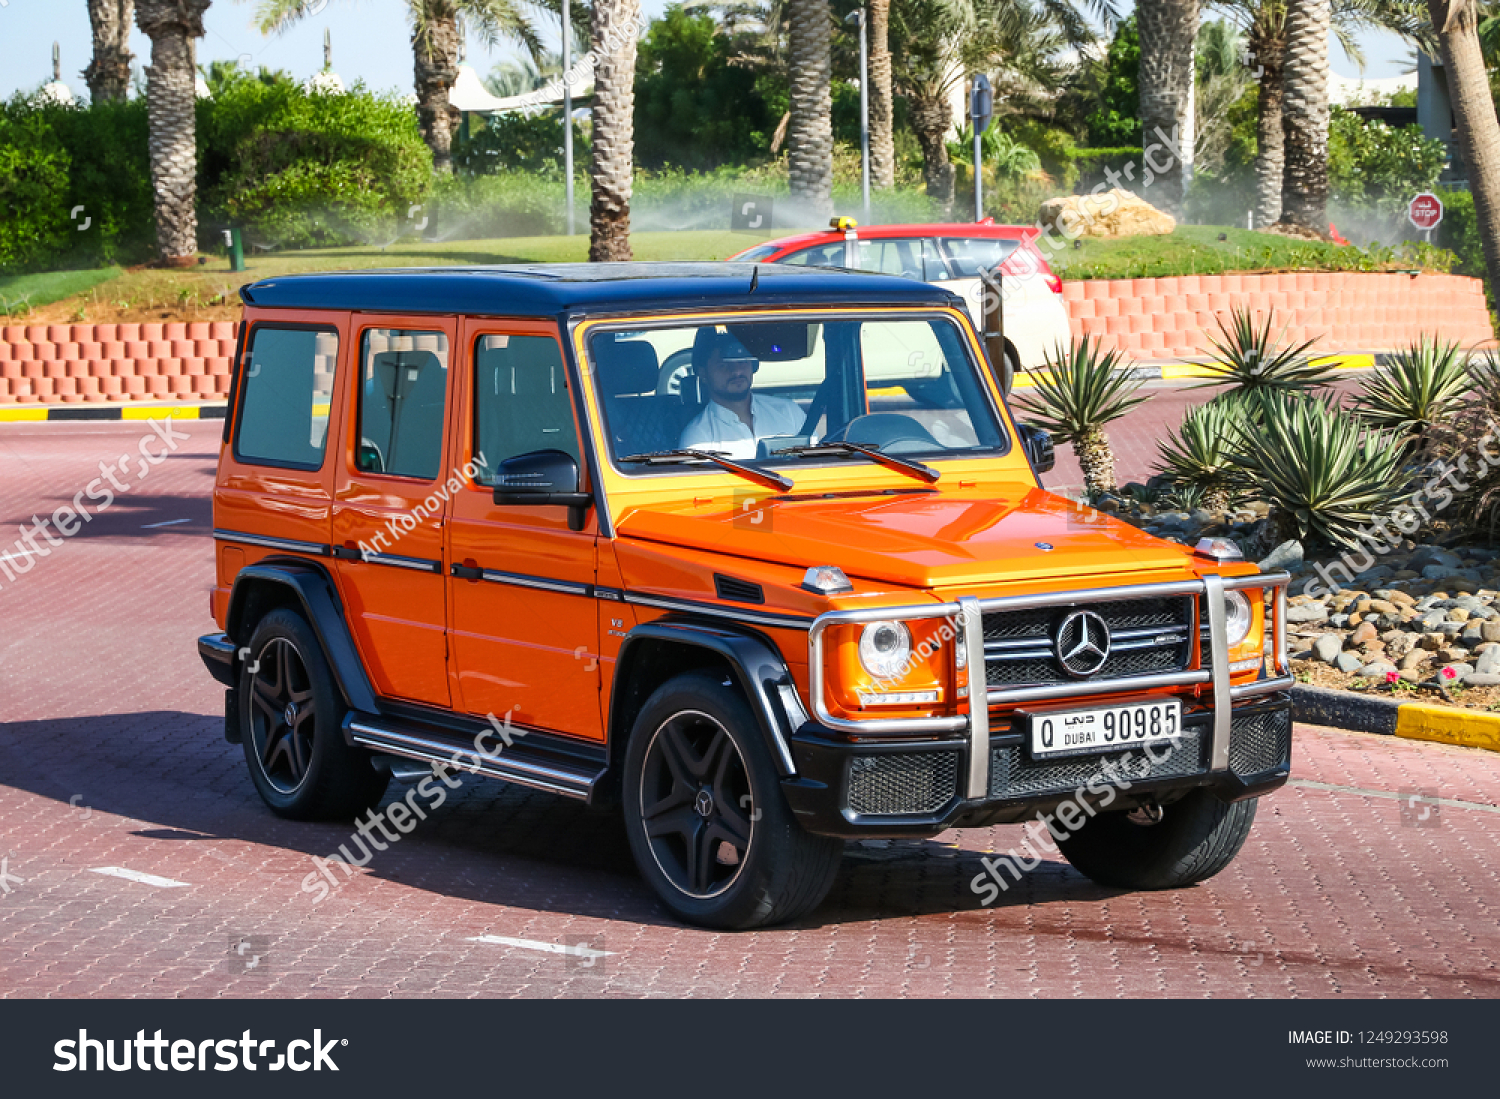 Dubai Uae November 15 2018 Luxury Stock Photo Edit Now 1249293598